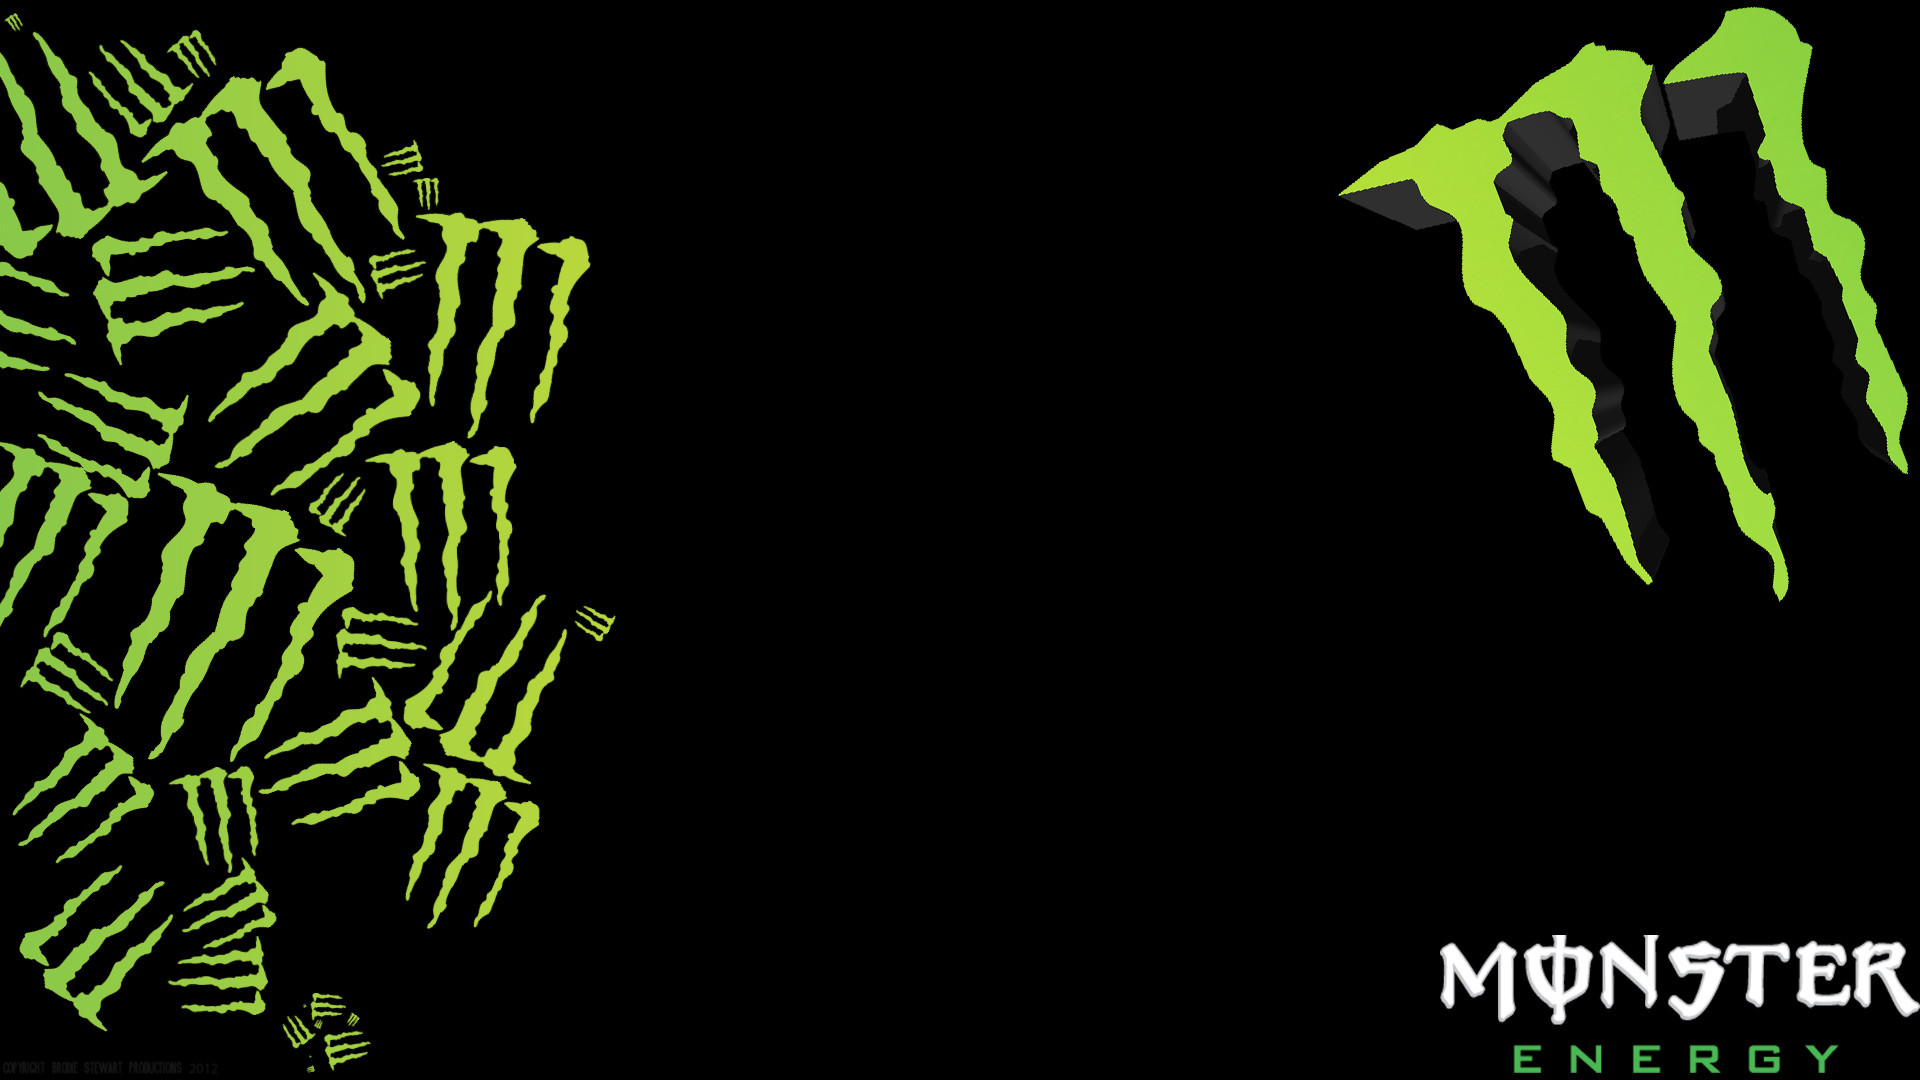 Res: 1920x1080, Monster Energy Wallpaper Hd  Monster Energy Wallpaper Hd Com K On  Irz Rockstar Wallpapers Hot